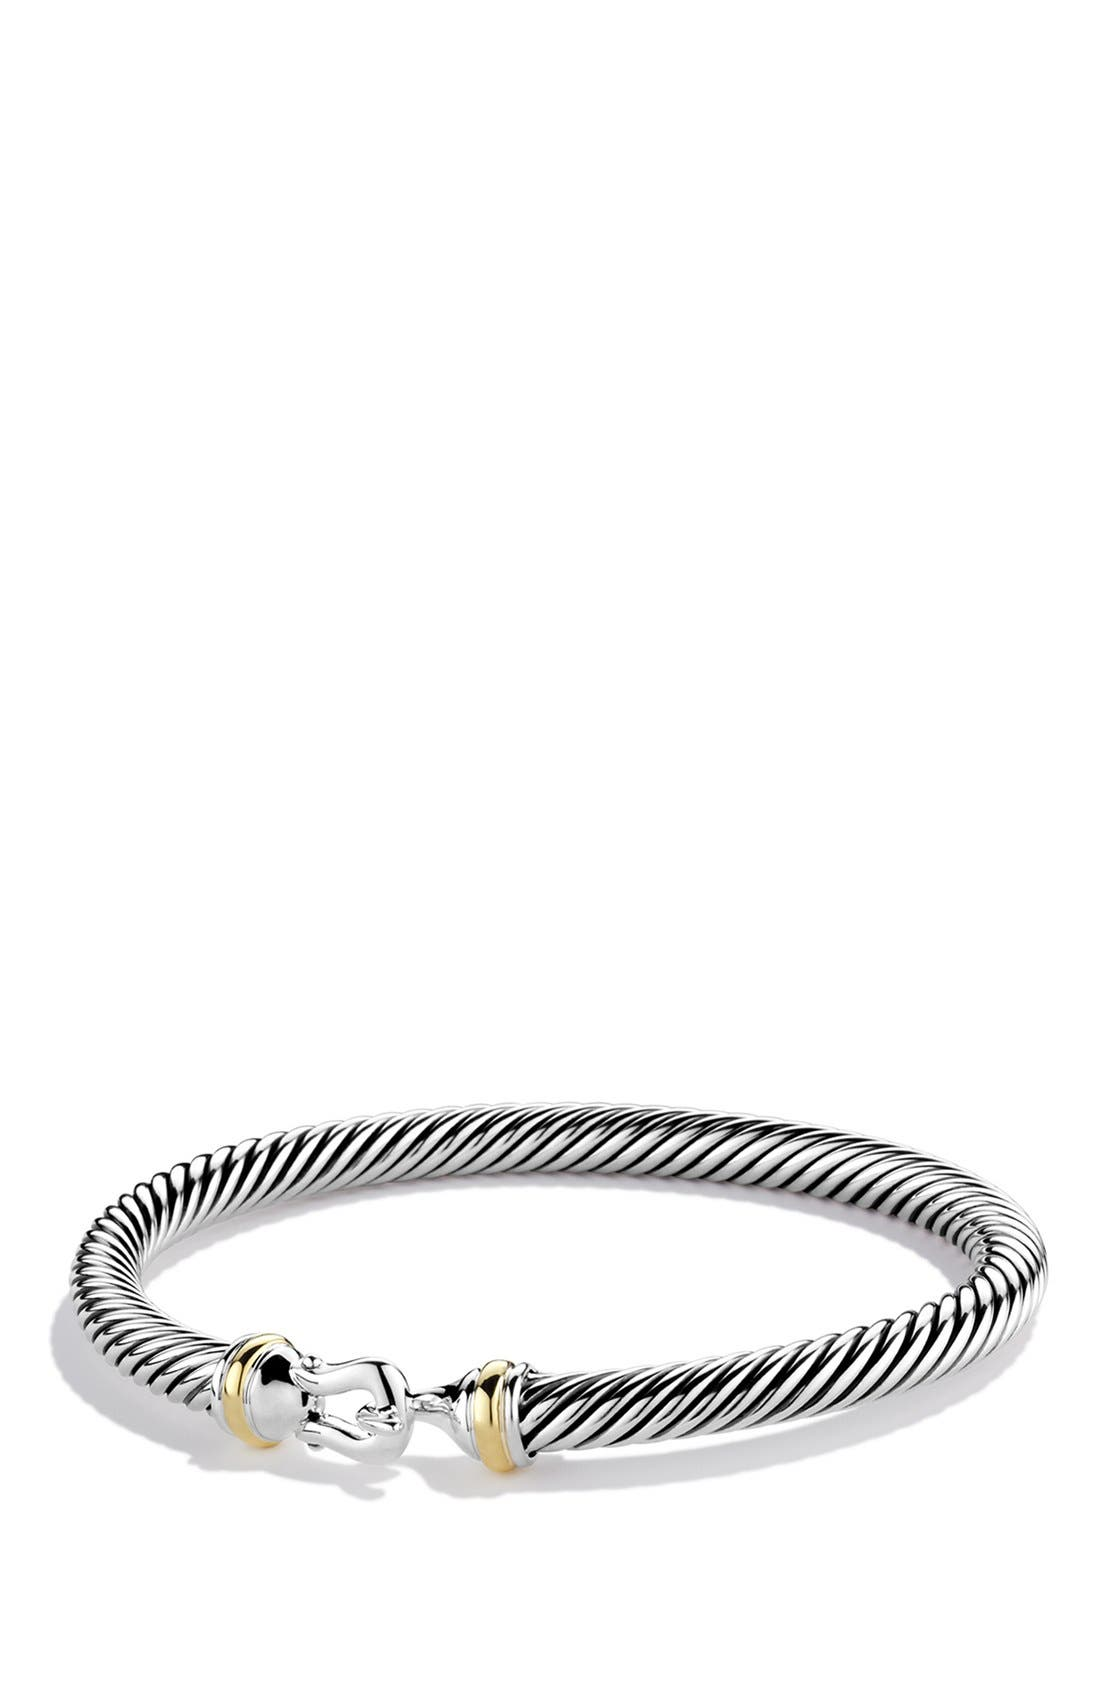 Cable Classic Buckle Bracelet with 18K Gold, 5mm,                             Main thumbnail 1, color,                             Two Tone